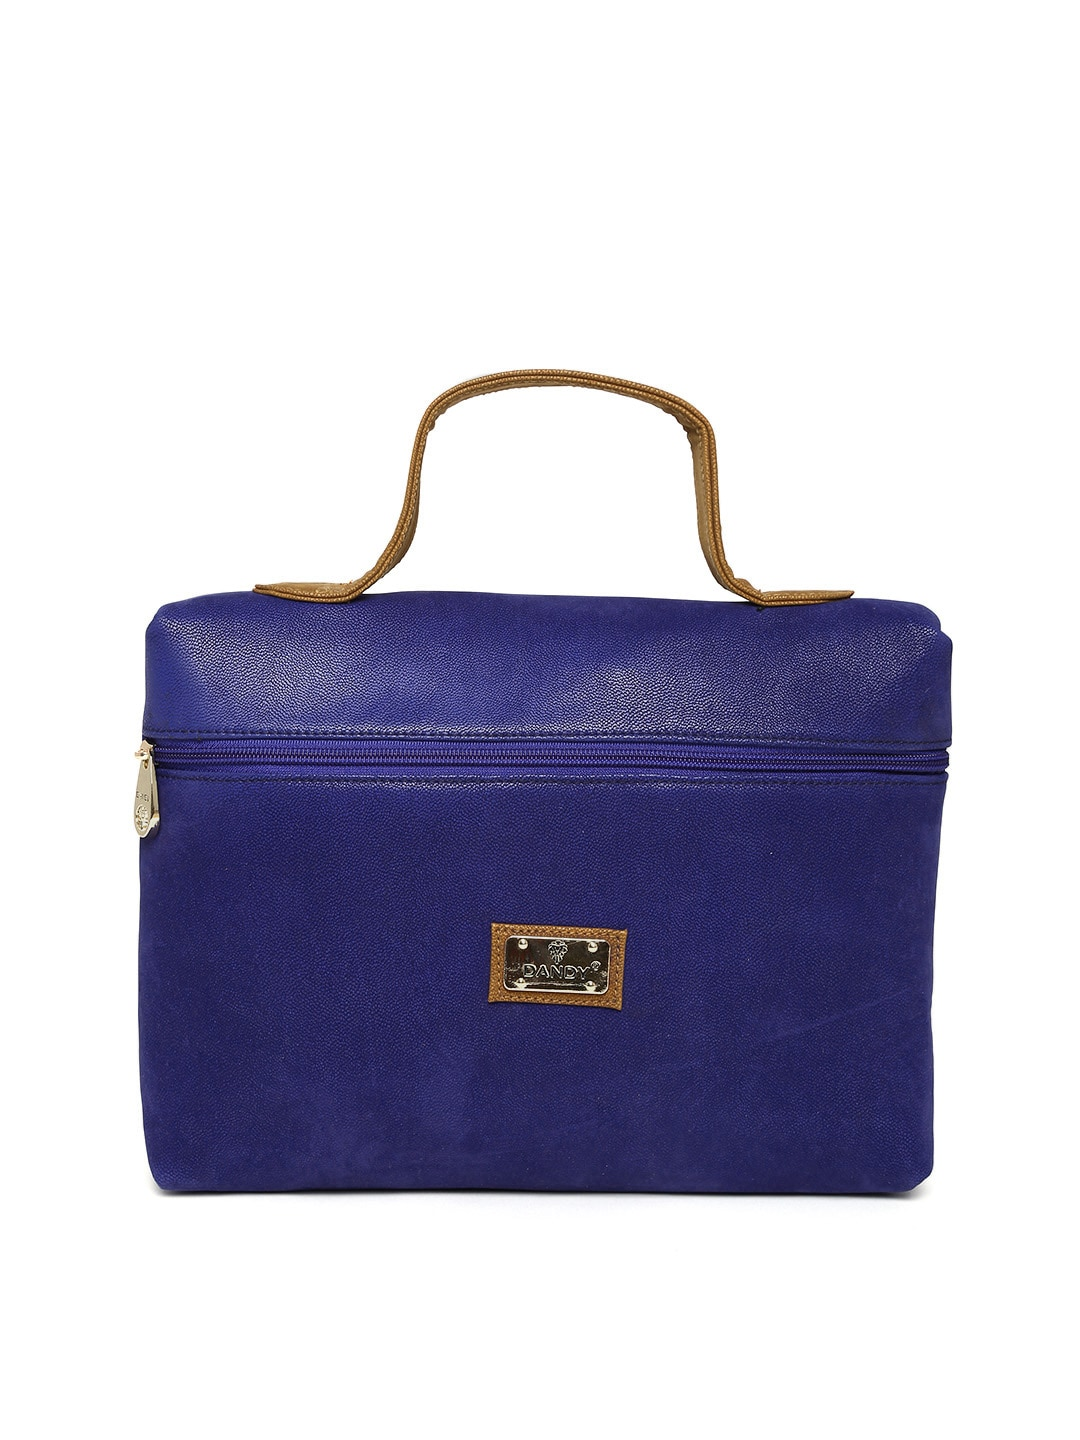 D And Y Dandy Dark Blue Handbag (Multicolor)